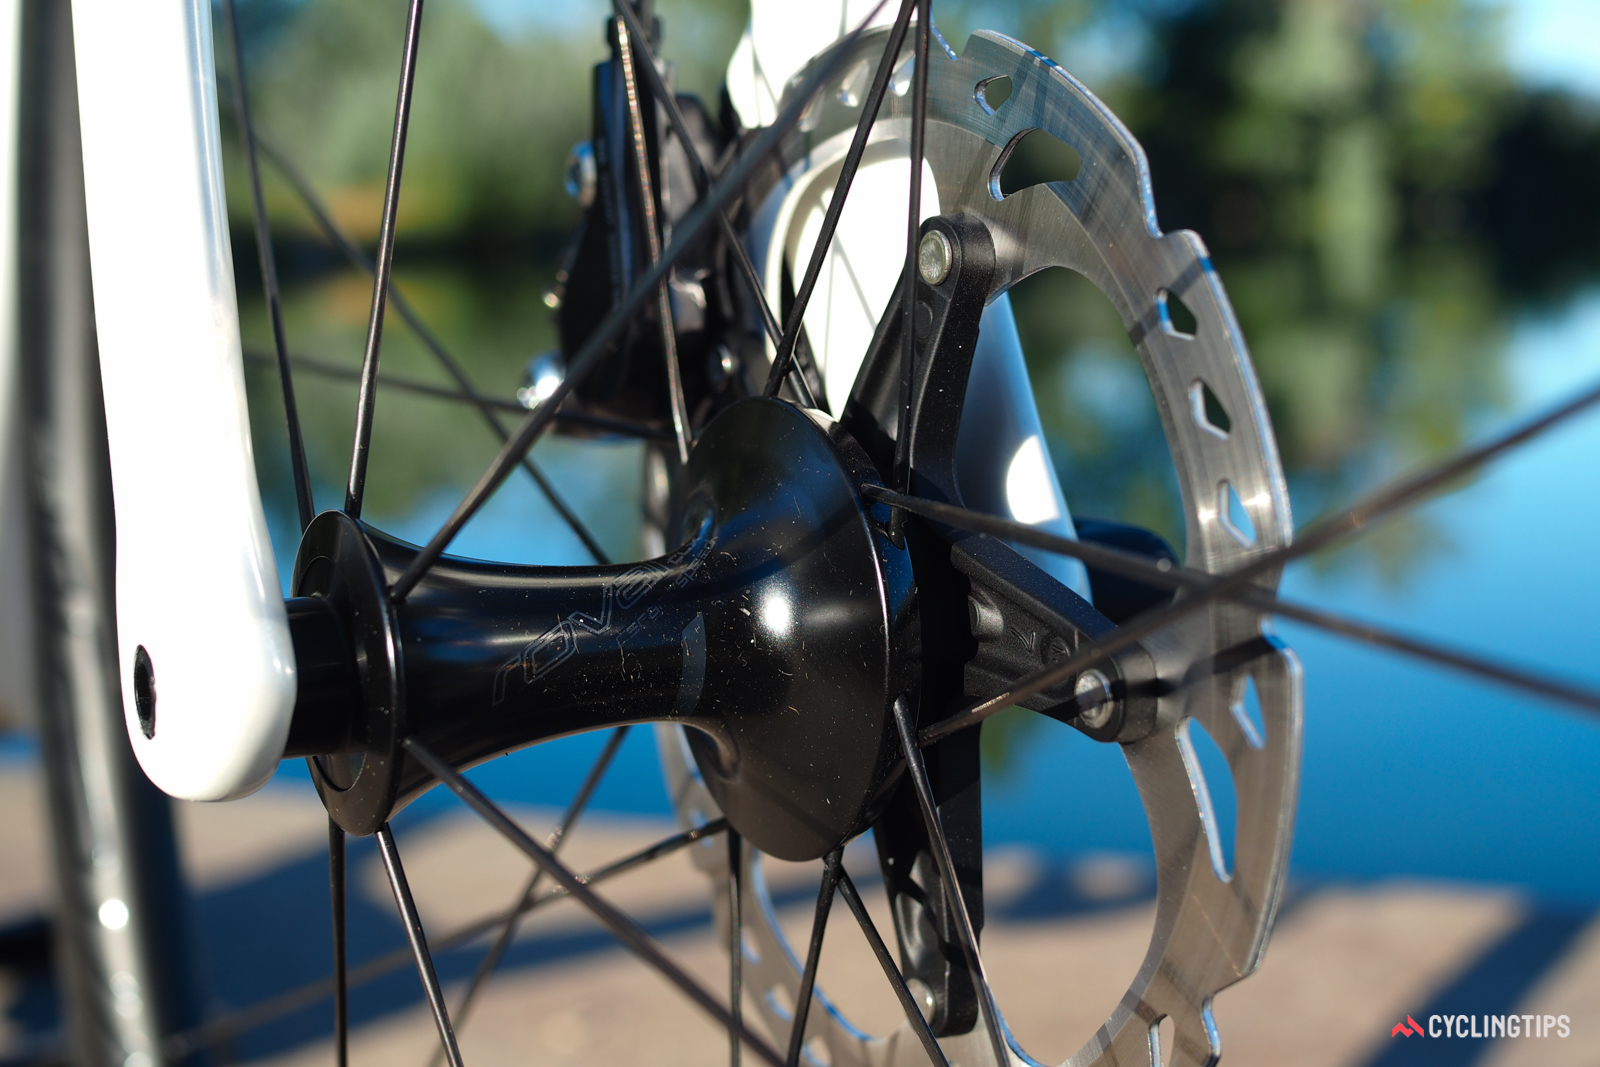 The Roval front hub is admirably sleek. The rotor? Not so much.